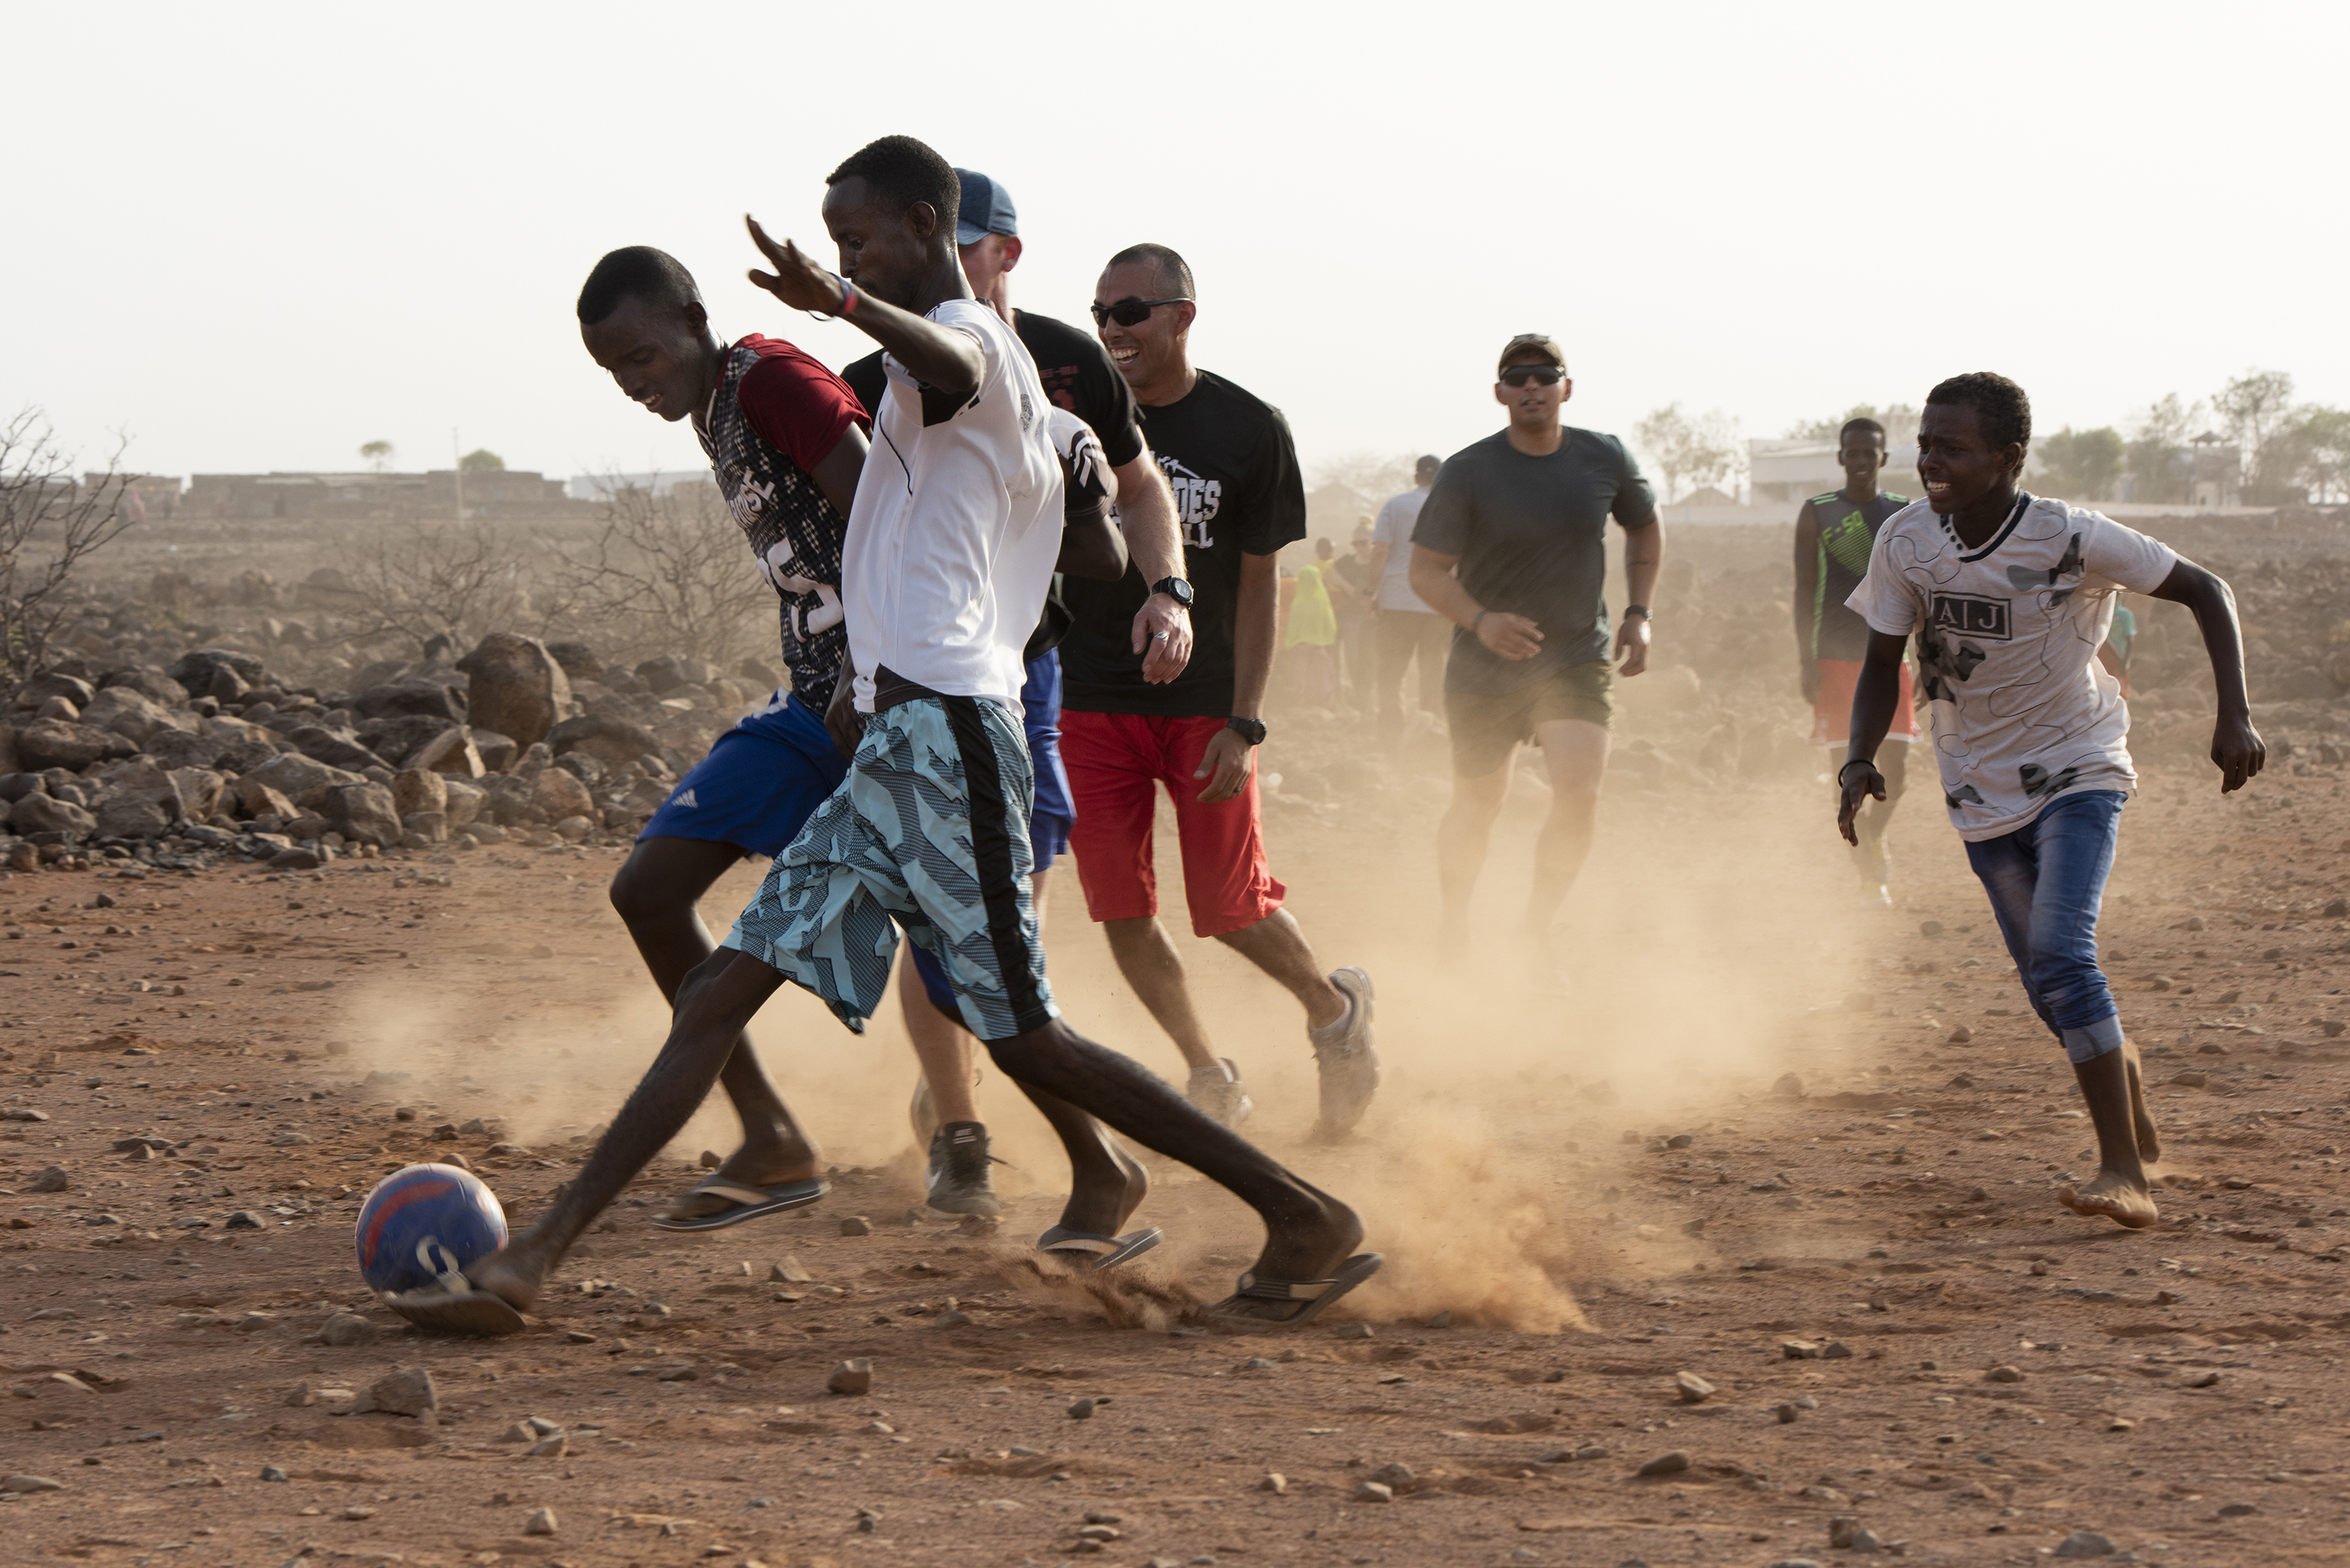 U.S. Service members assigned to Combined Joint Task Force - Horn of Africa, participate in a friendly game of soccer with children from the nearby village, outside of Chebelley village, Djibouti, Aug. 3, 2018. Over 30 Soldiers and Airmen volunteered for the outreach event organized by the 404th Civil Affairs Battalion. (U.S. Air National Guard photo by Master Sgt. Sarah Mattison)